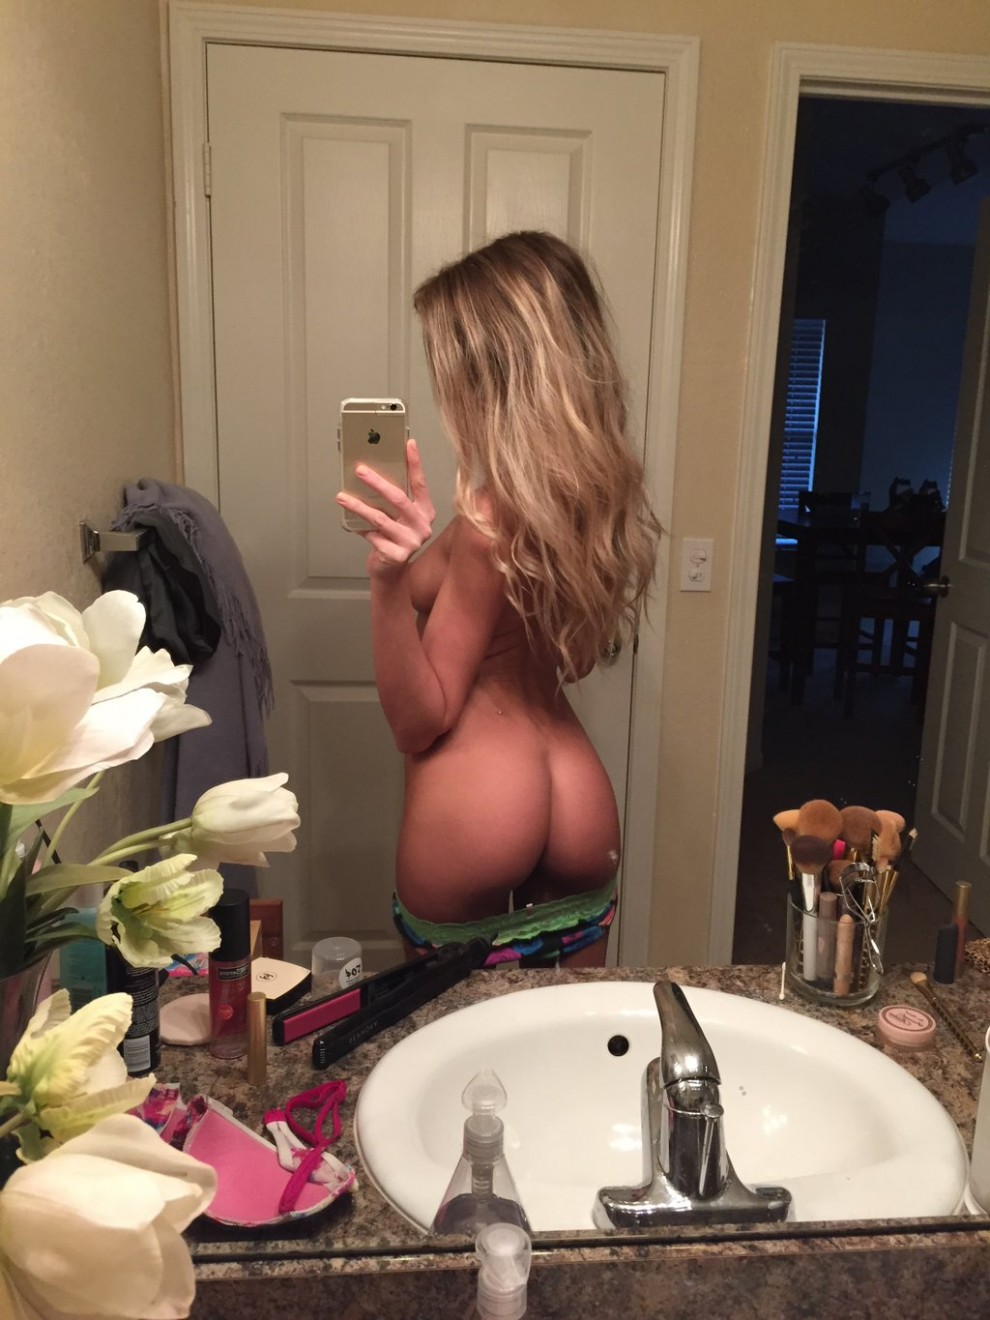 Lovely from behind